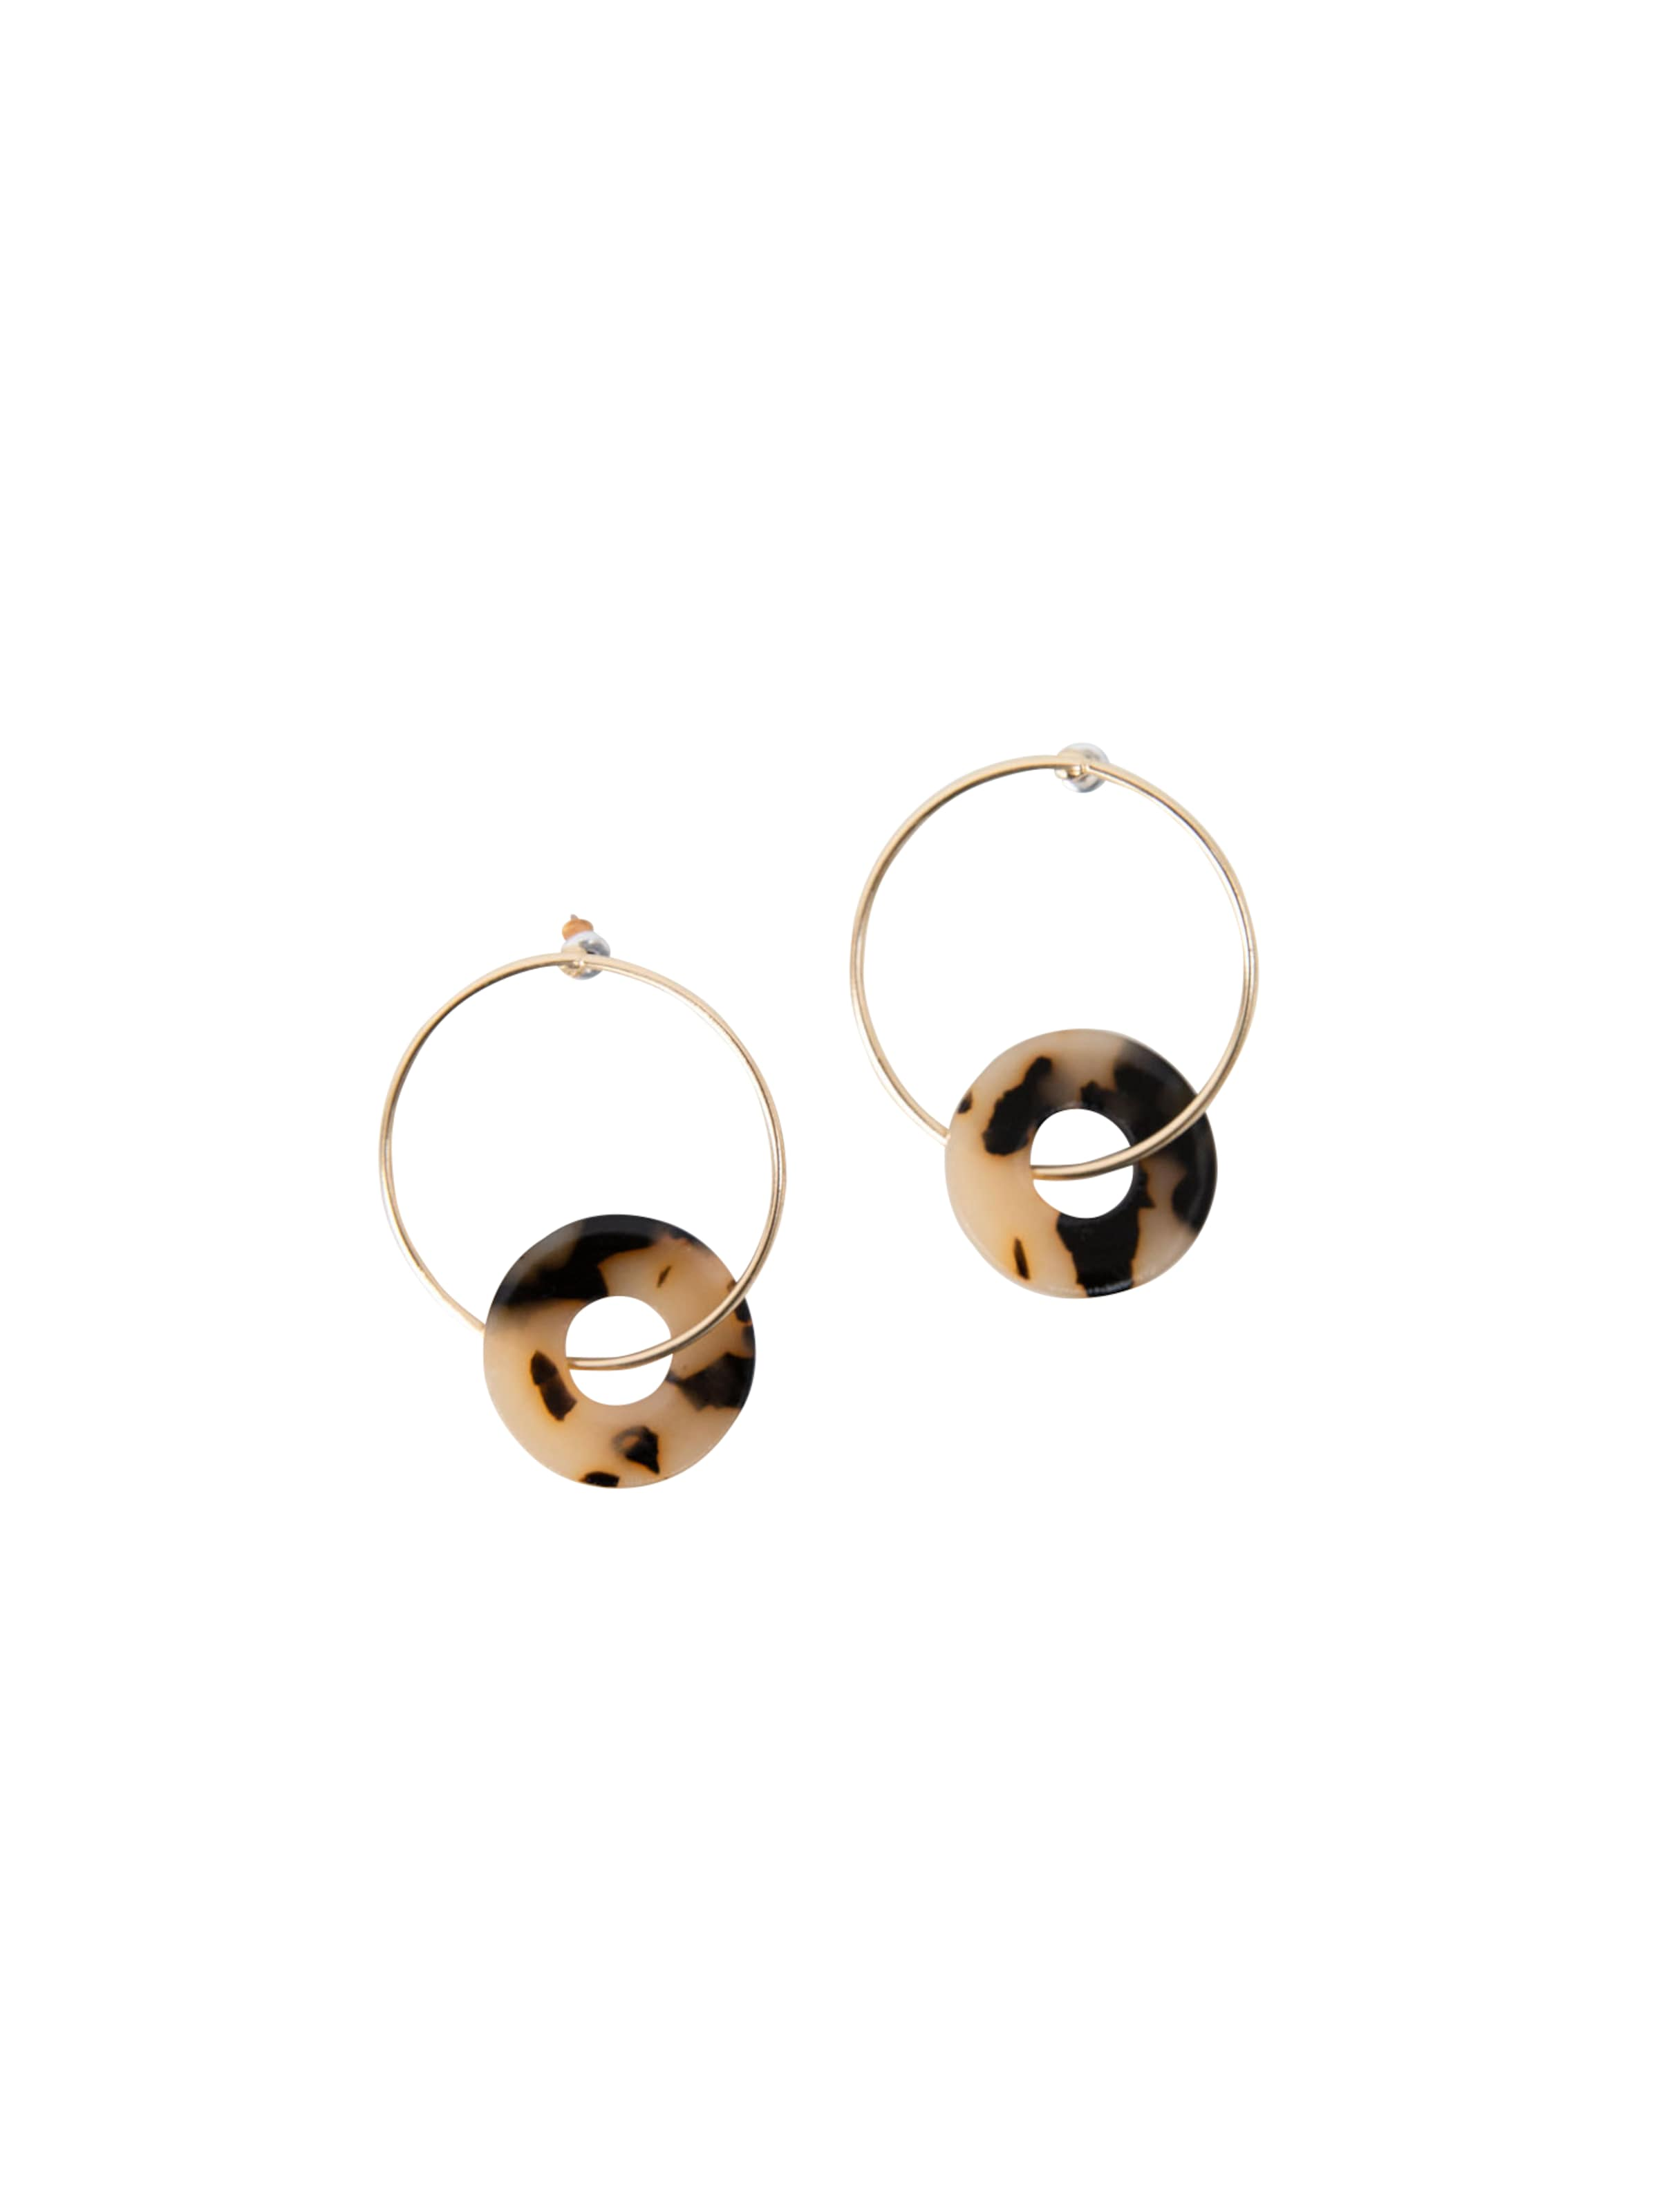 'birthe' Edited Boucles D'oreilles NudeMarron En wm0Nnyv8O